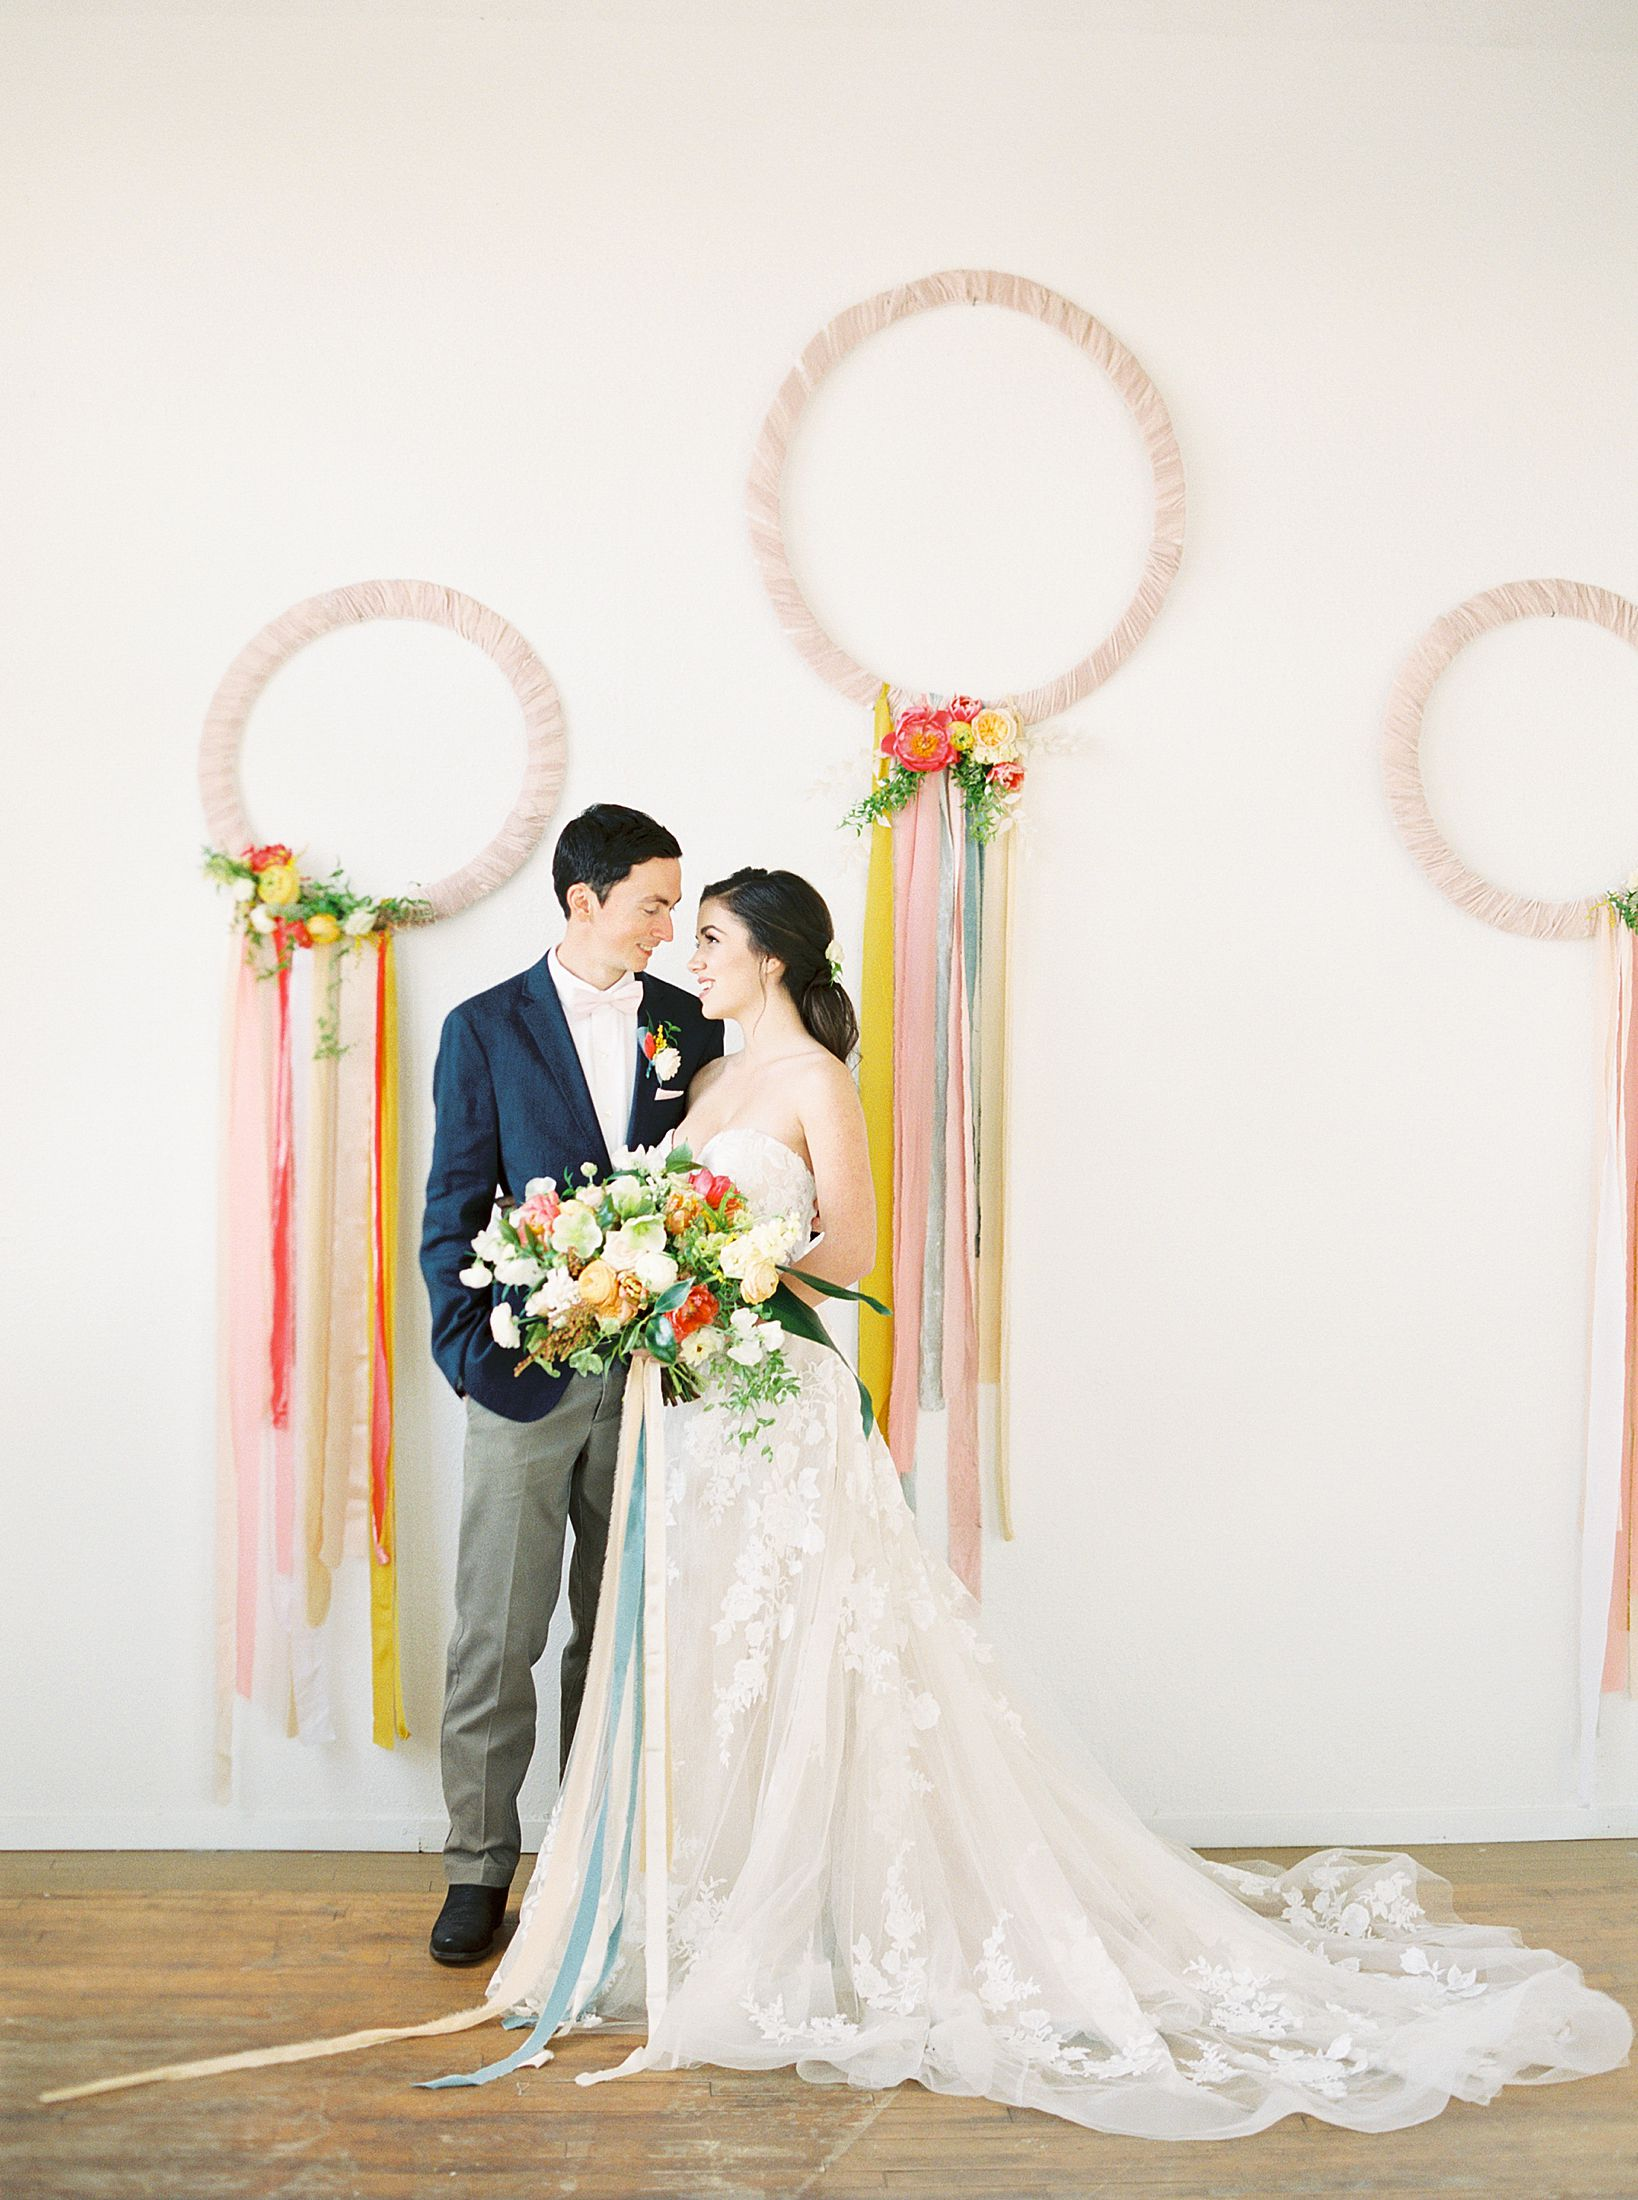 Bay Area Spring Wedding Inspiration - Ashley Baumgartner - Inspired By This - Party Crush Studio and Lens of Lenox Videography - Bay Area Wedding Photography_0022.jpg